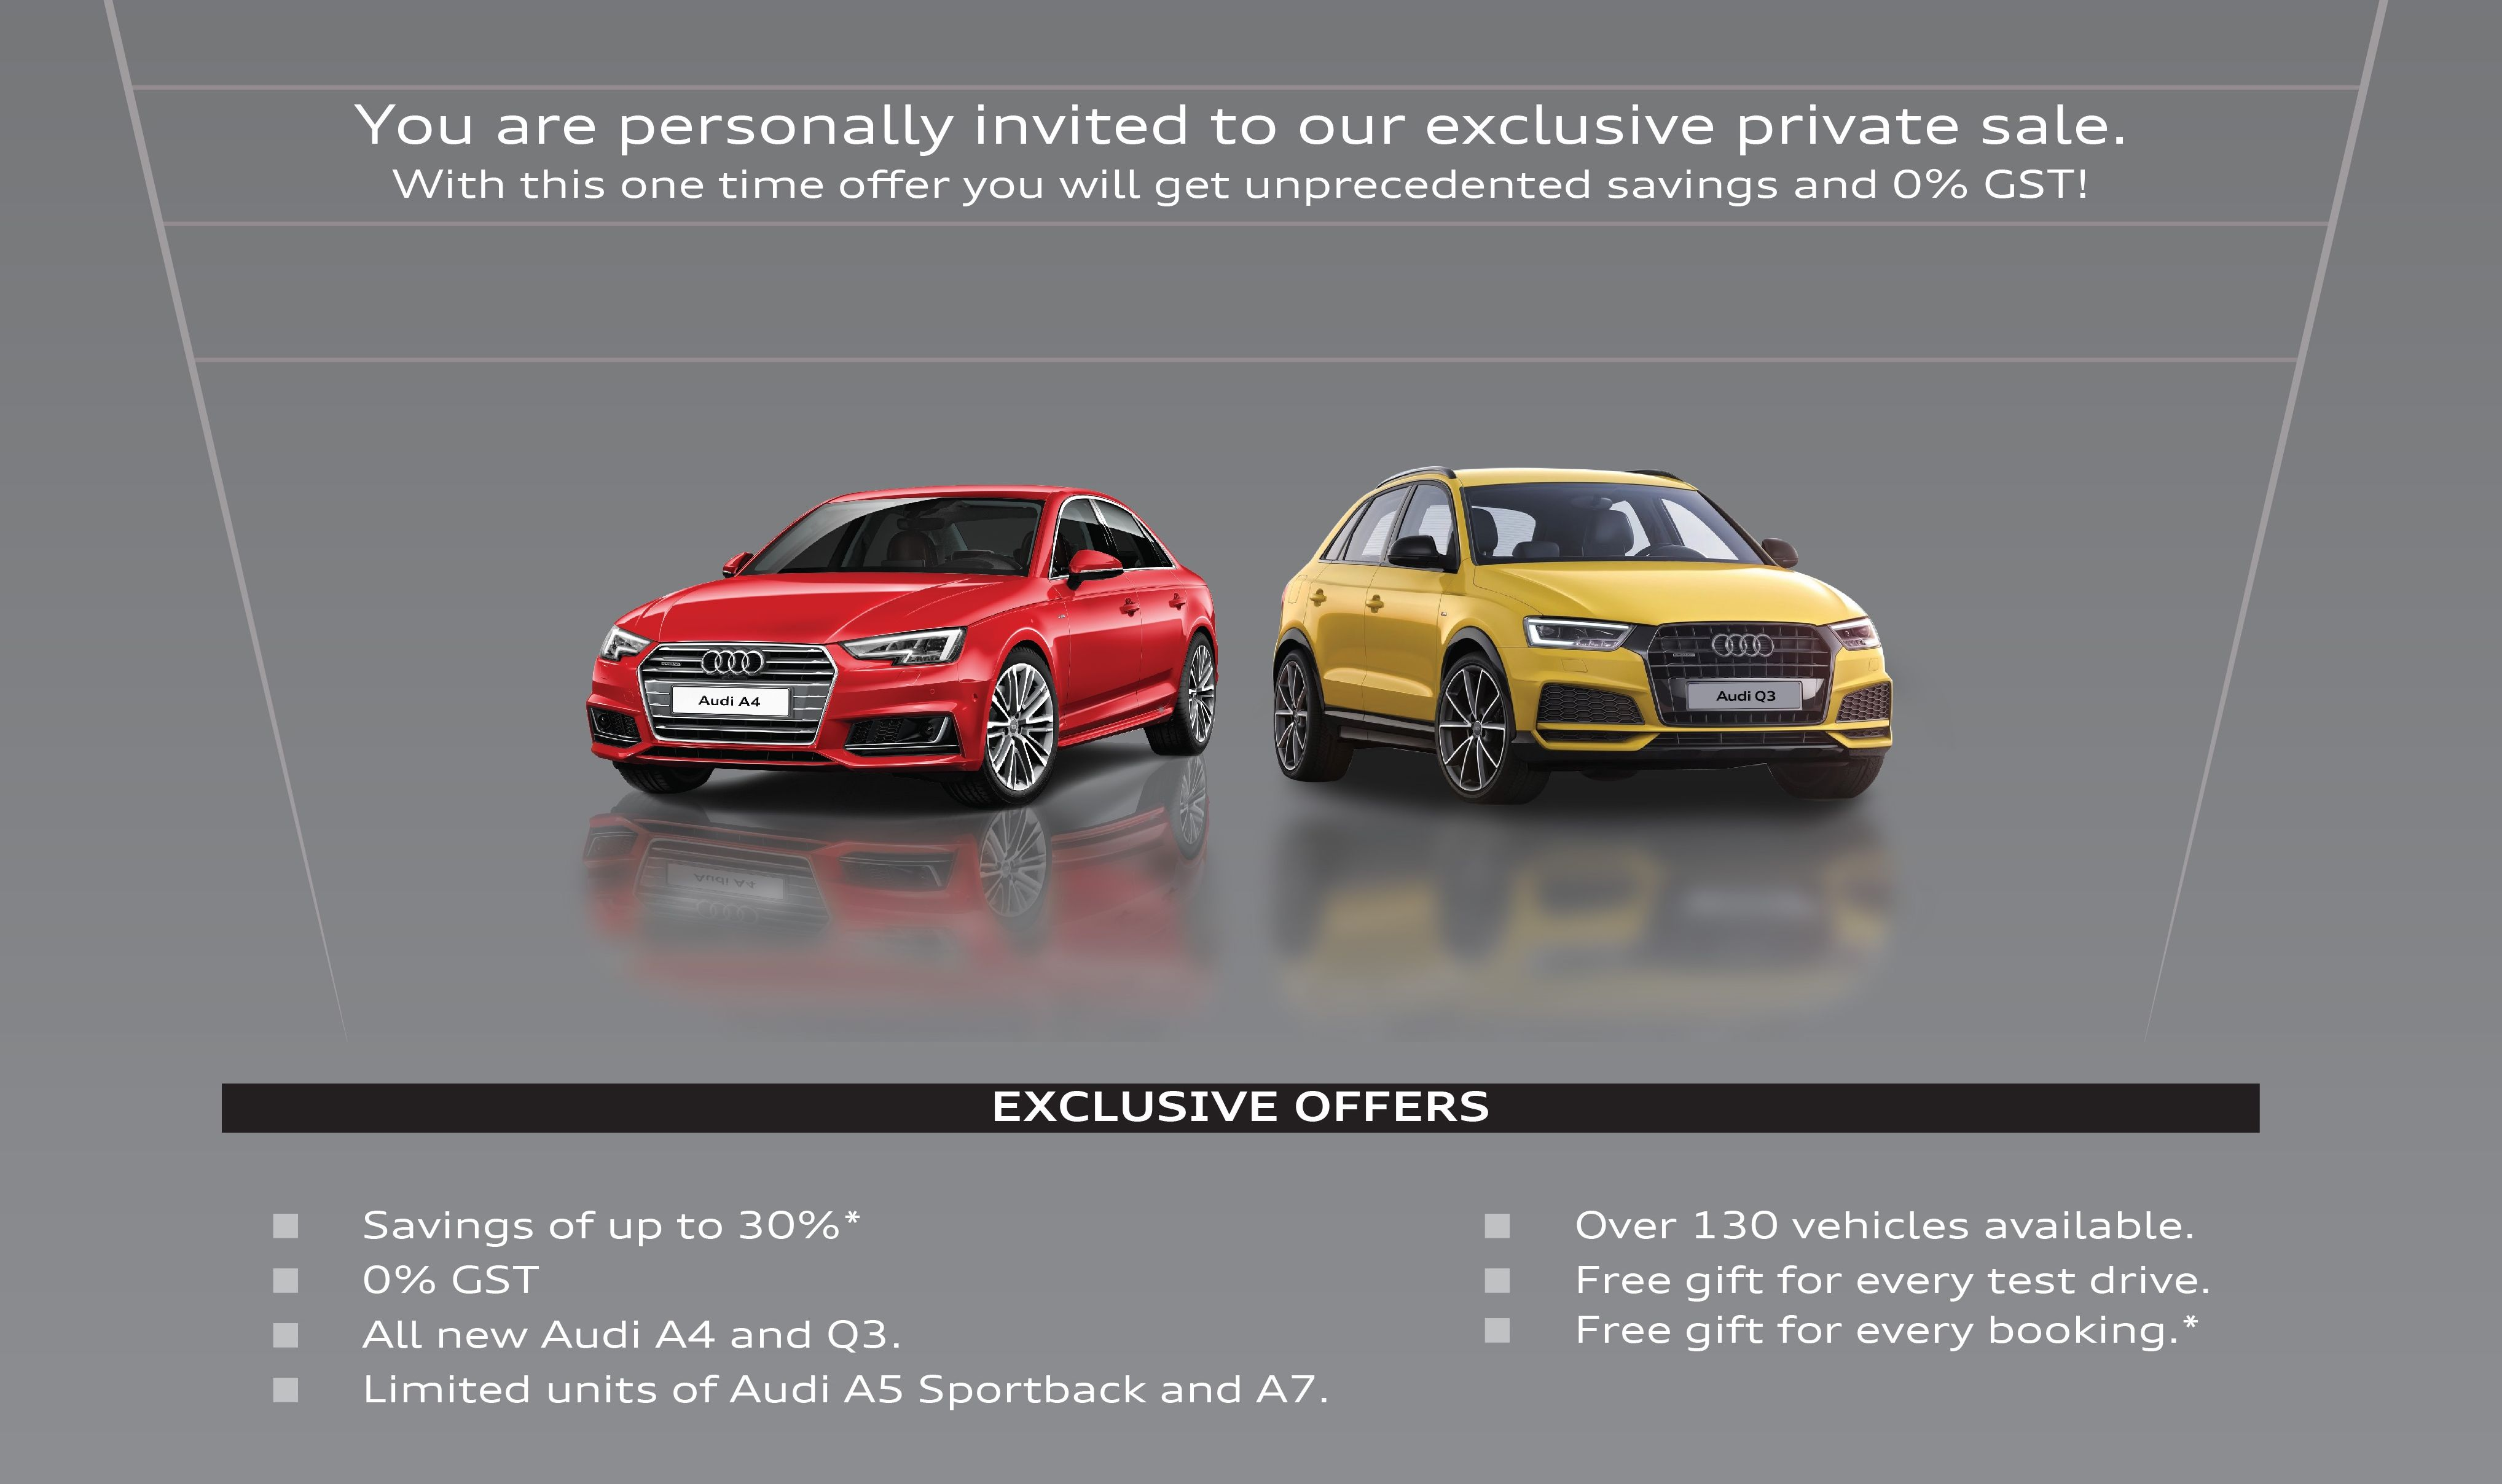 ad euromobil private sale from july 21 22 up to 30 off on audi